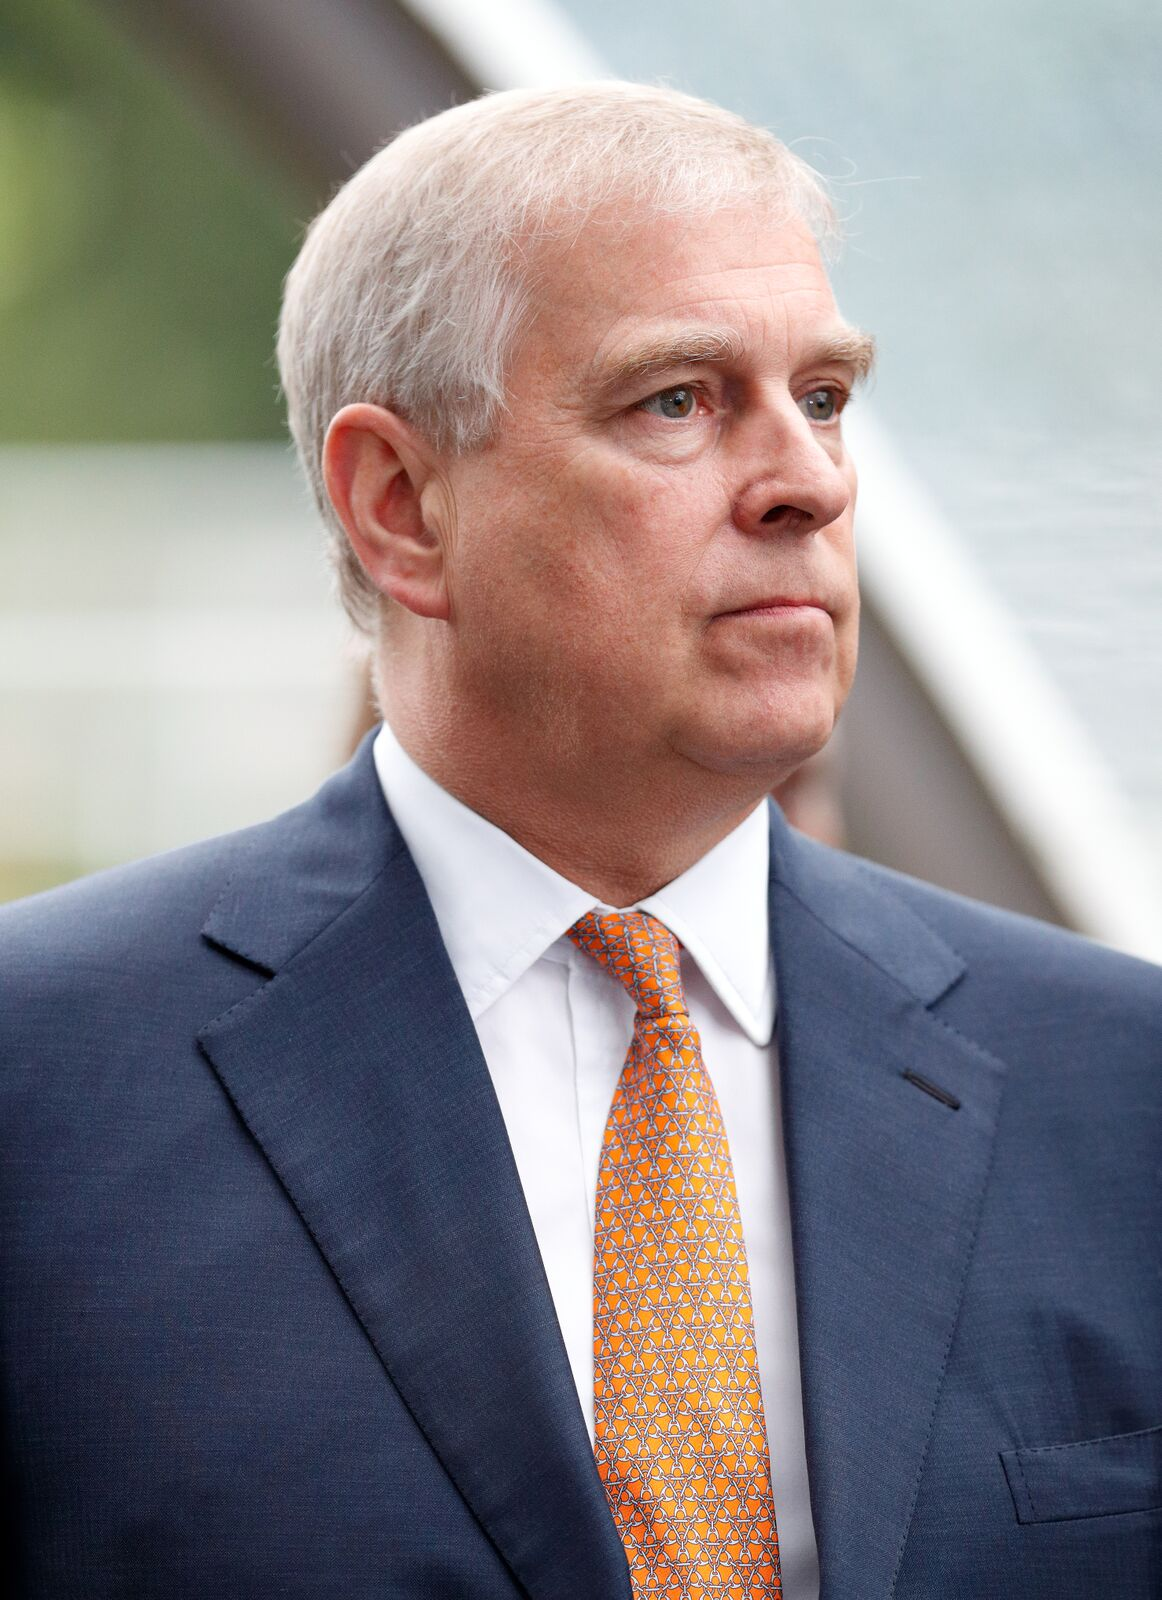 Prince Andrew, Duke of York attends the King George VI racing meet at Ascot Racecourse on July 29, 2017 in Ascot, England | Photo: Getty Images